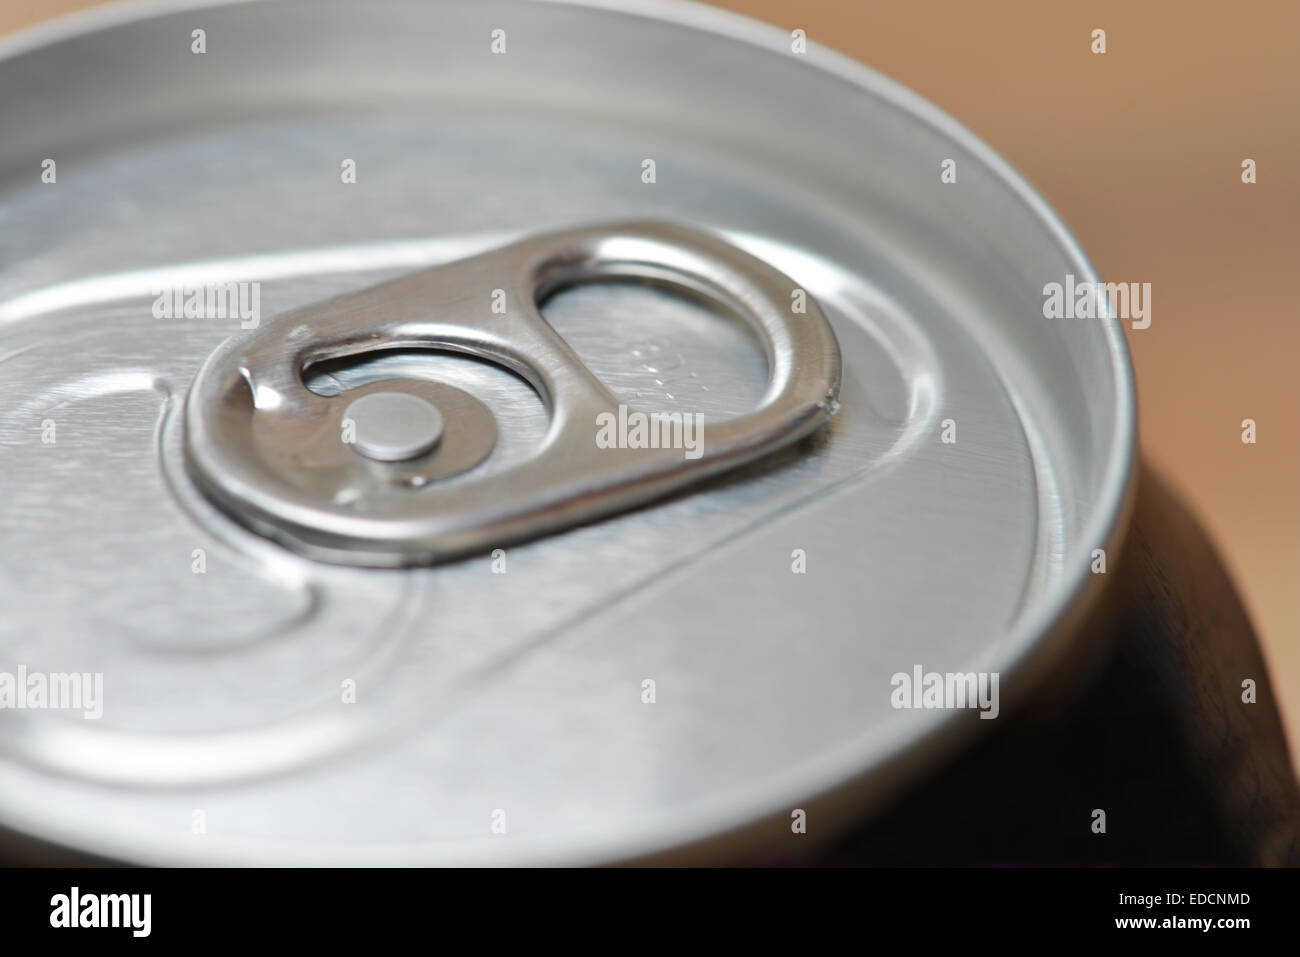 Aluminum can top and ring pull - Stock Image